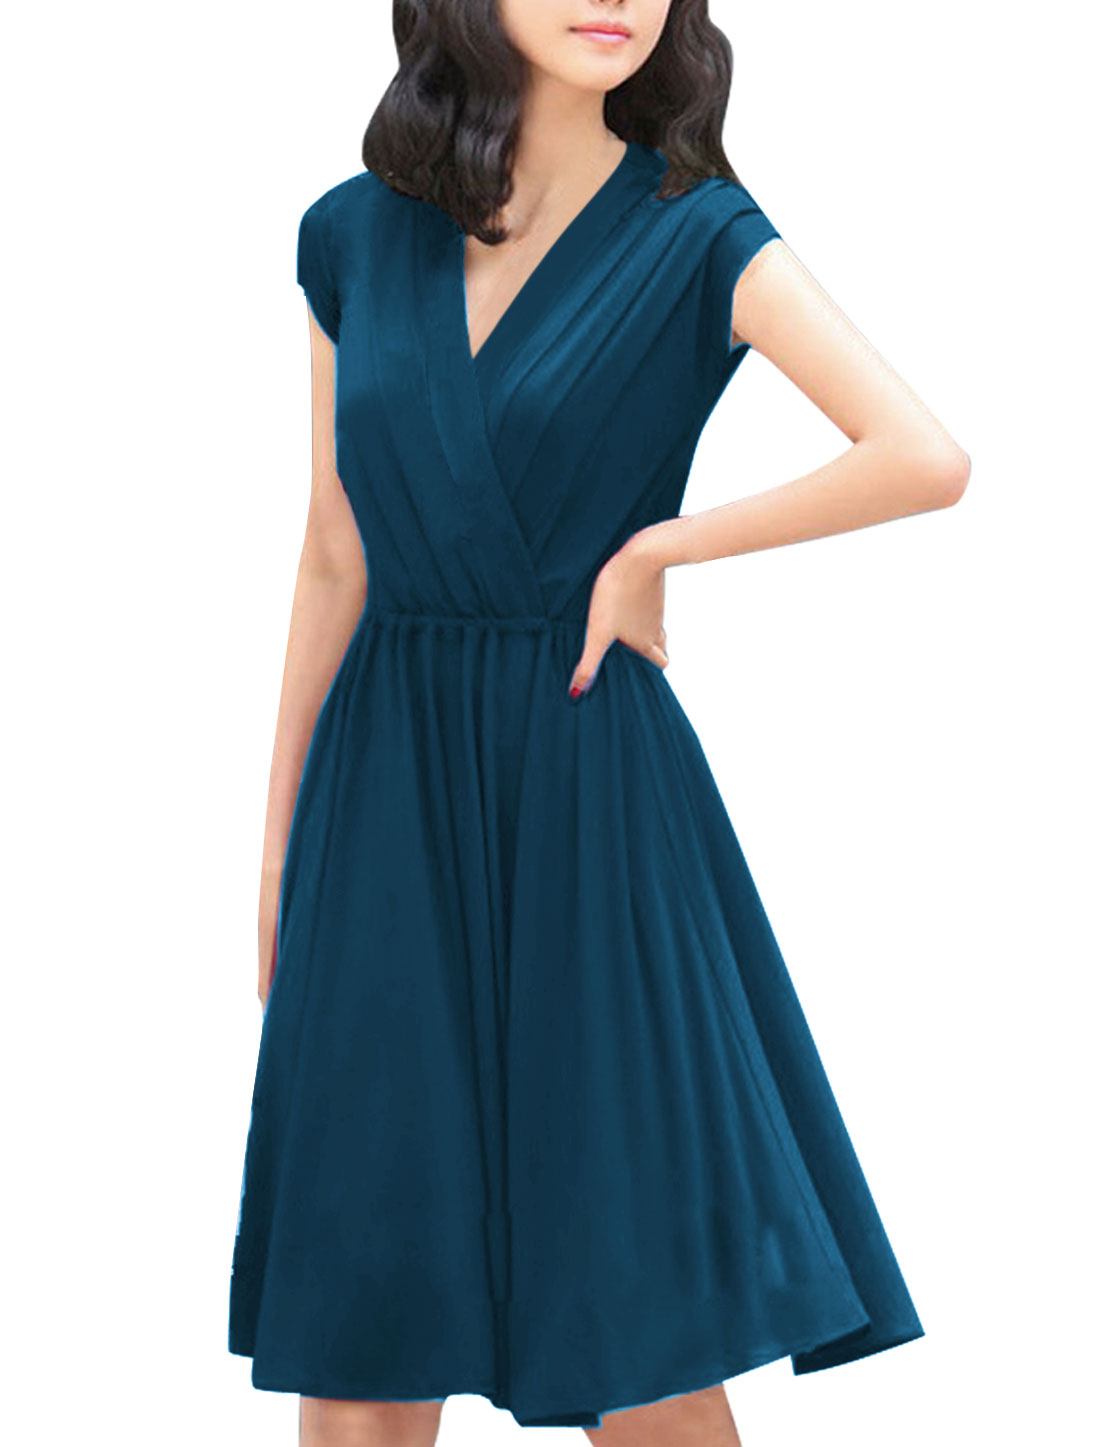 Women Chic Elastic Waist Dark Blue Knee-Length Dress L